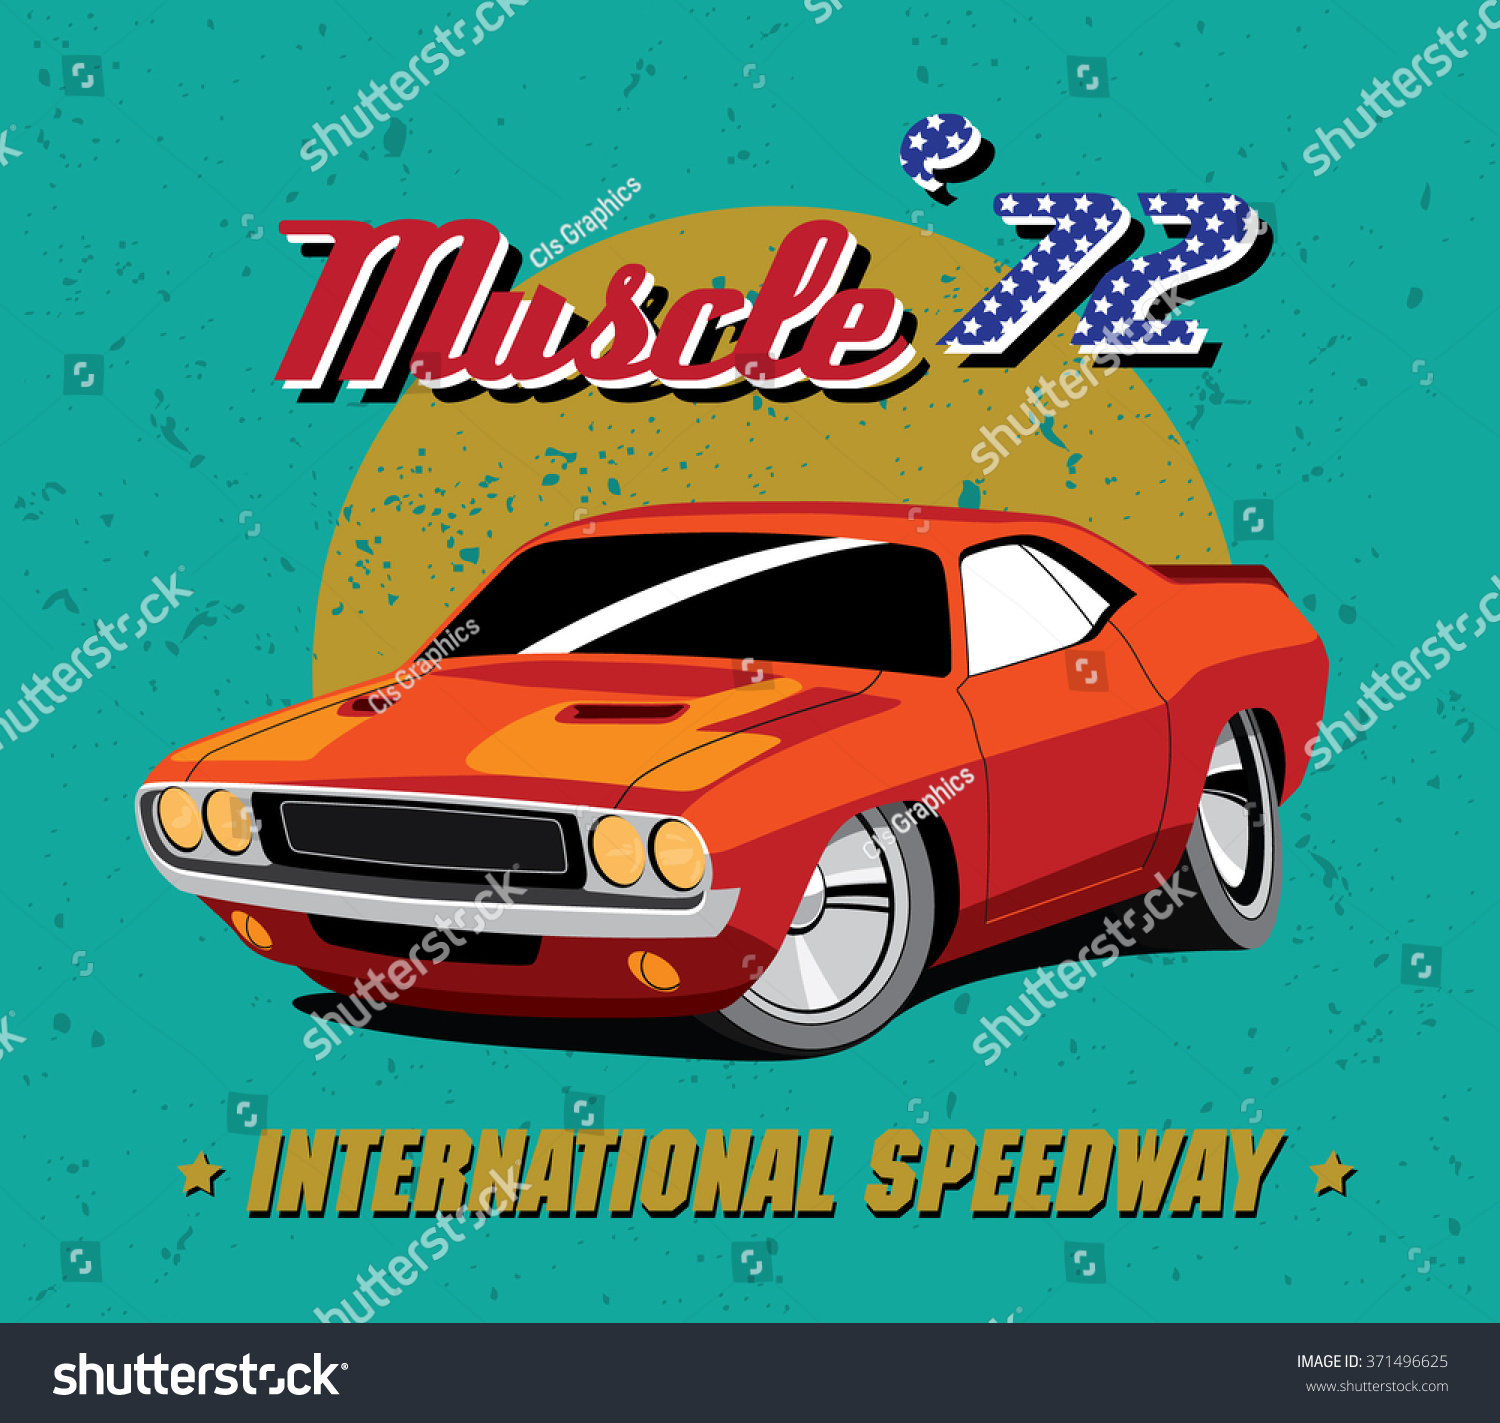 Vector Illustration Vintage Red Muscle Car Stock Vector 371496625 ...